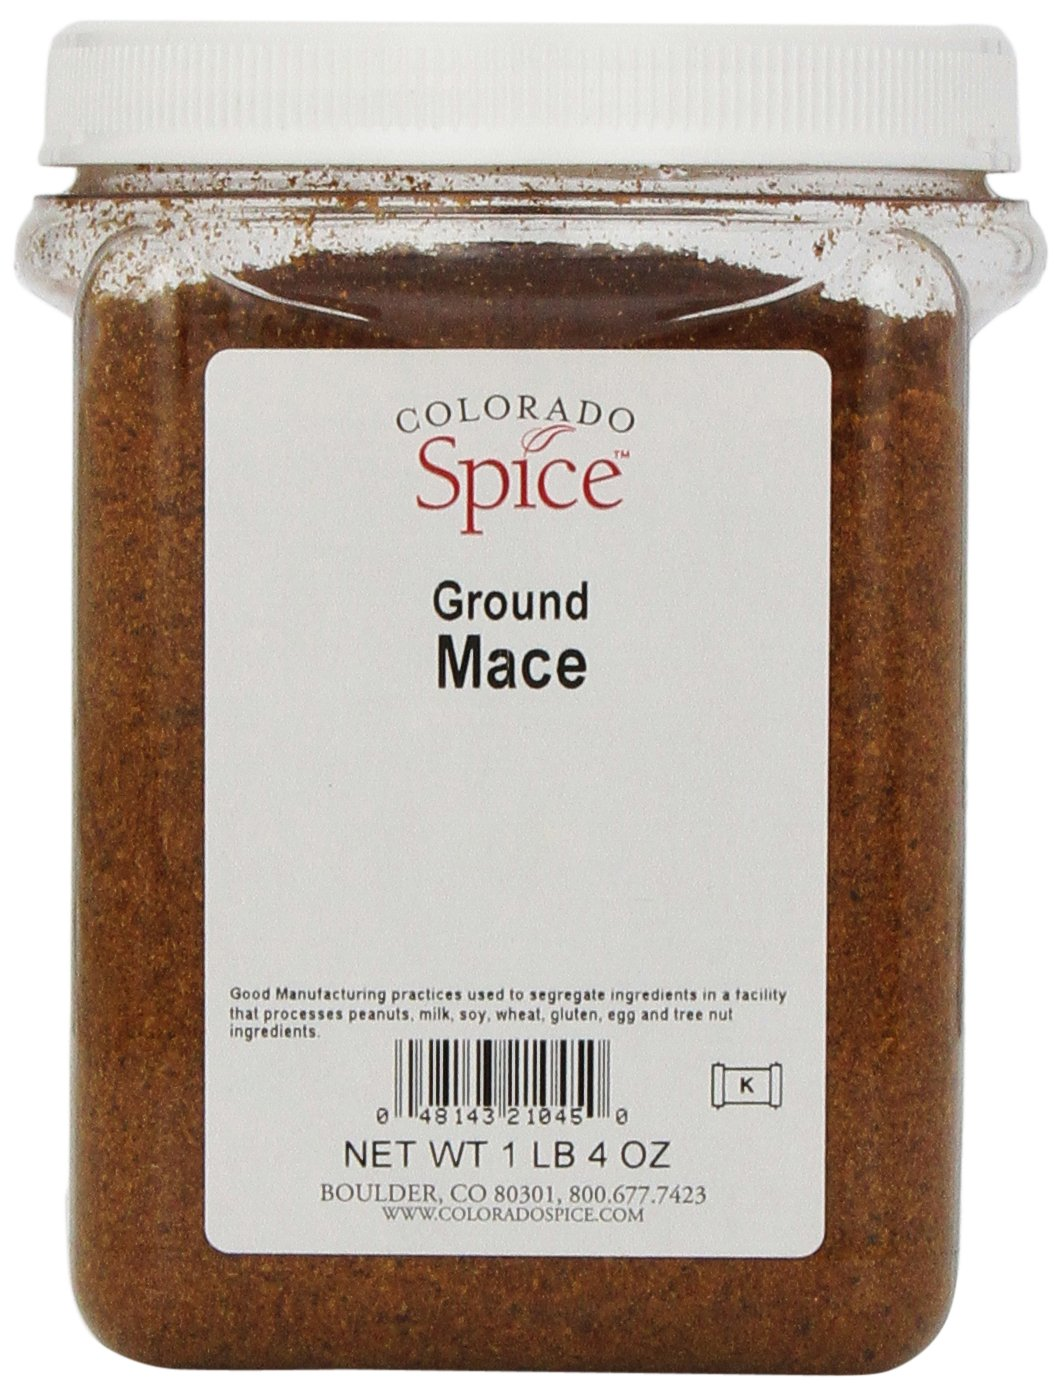 Colorado Spice Mace, Ground, 20 Ounce Jar